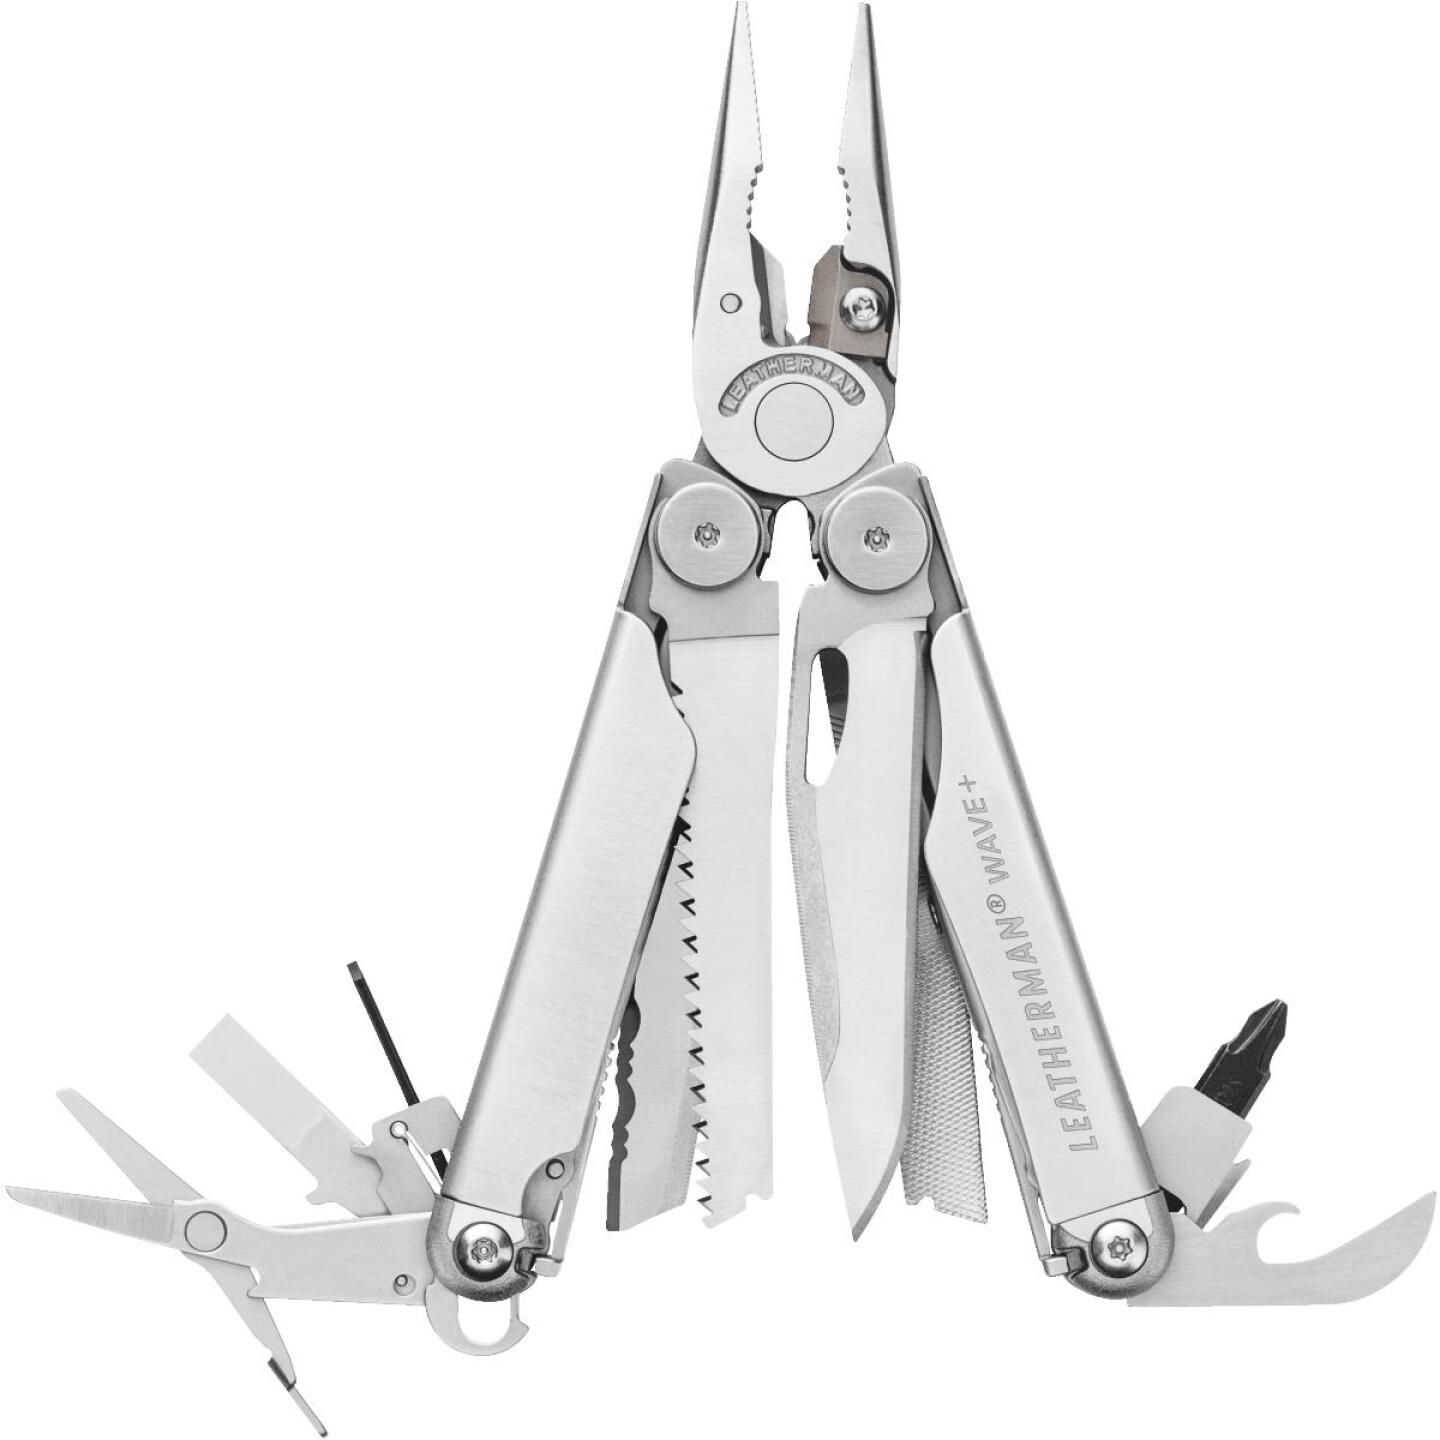 Leatherman Wave 18-In-1 Stainless Steel Multi-Tool Image 1